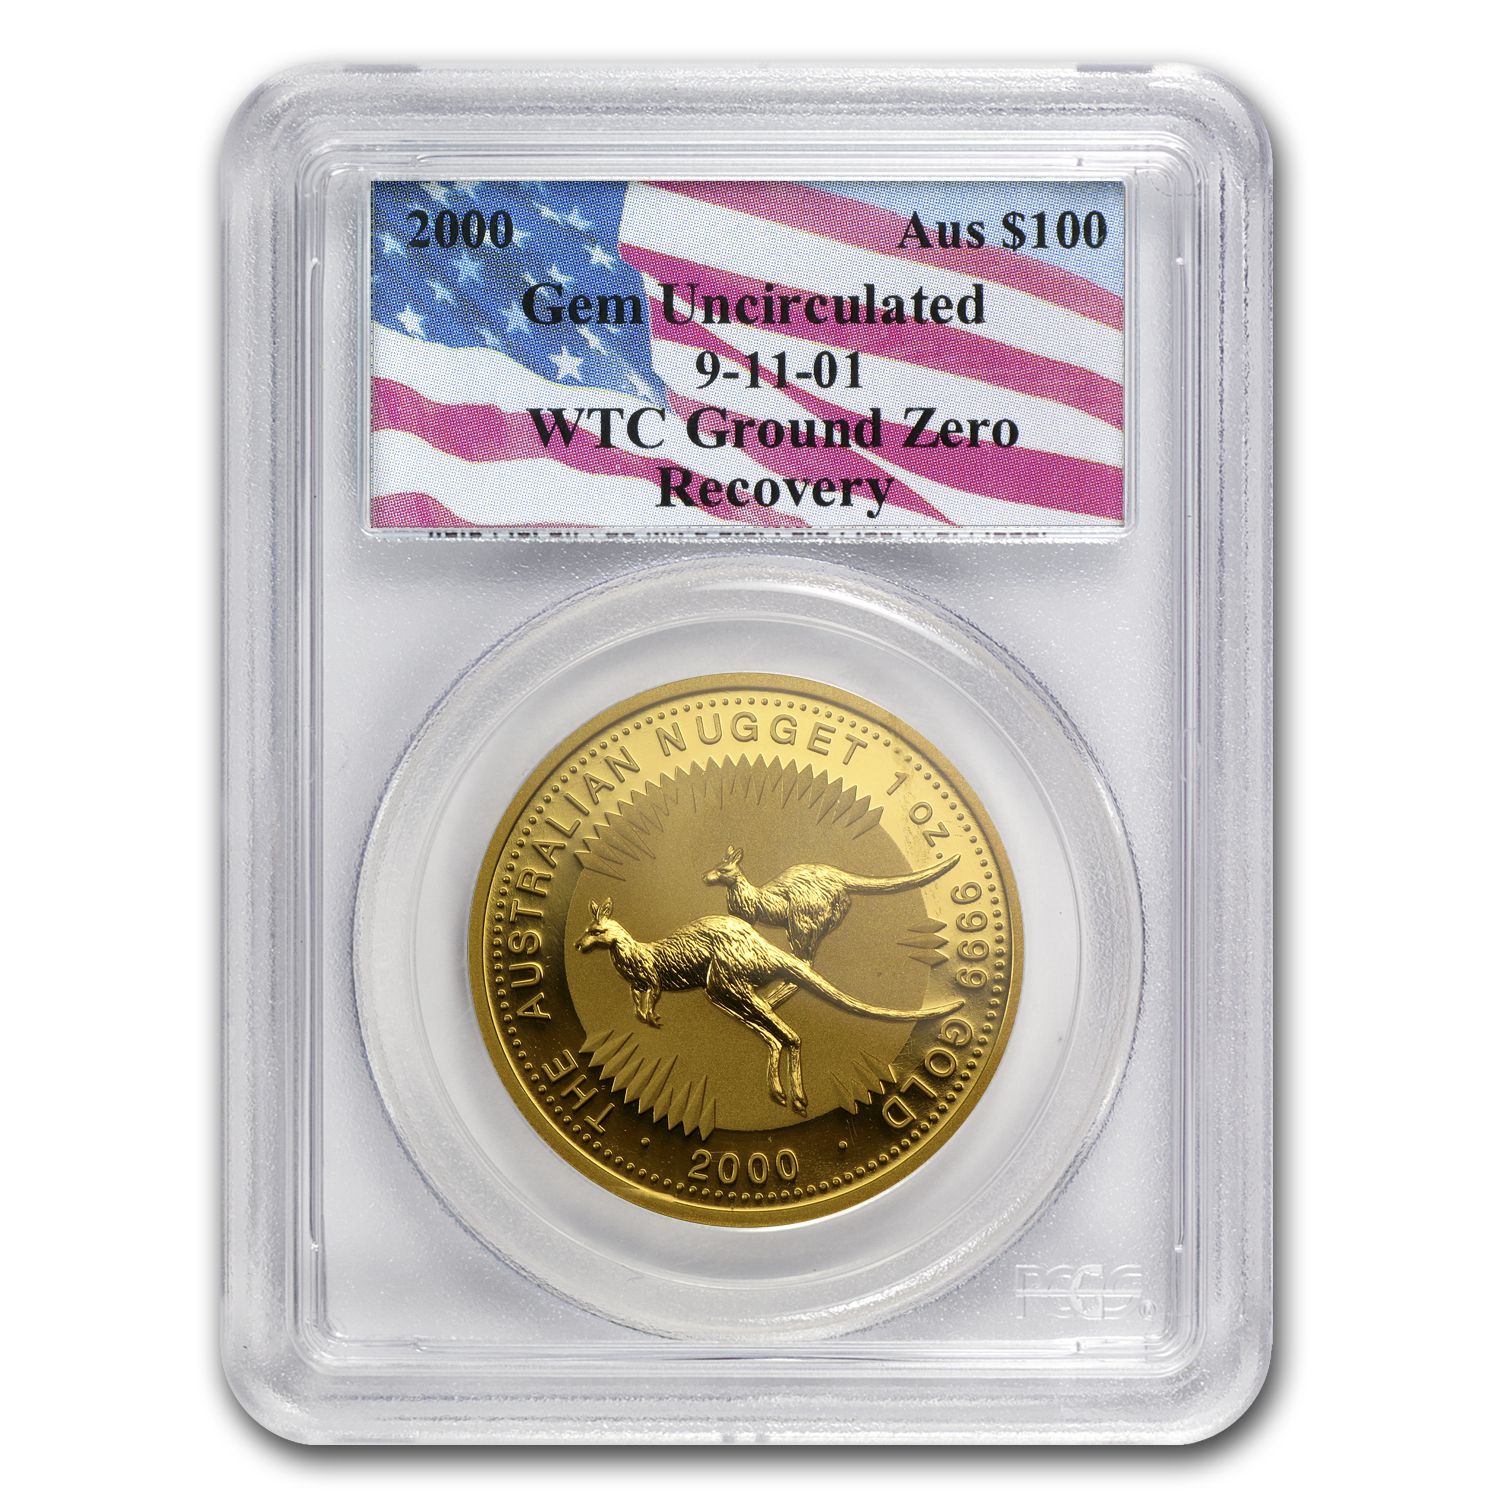 2000 1 oz Australian Gold Nugget PCGS WTC Ground Zero Gem Unc